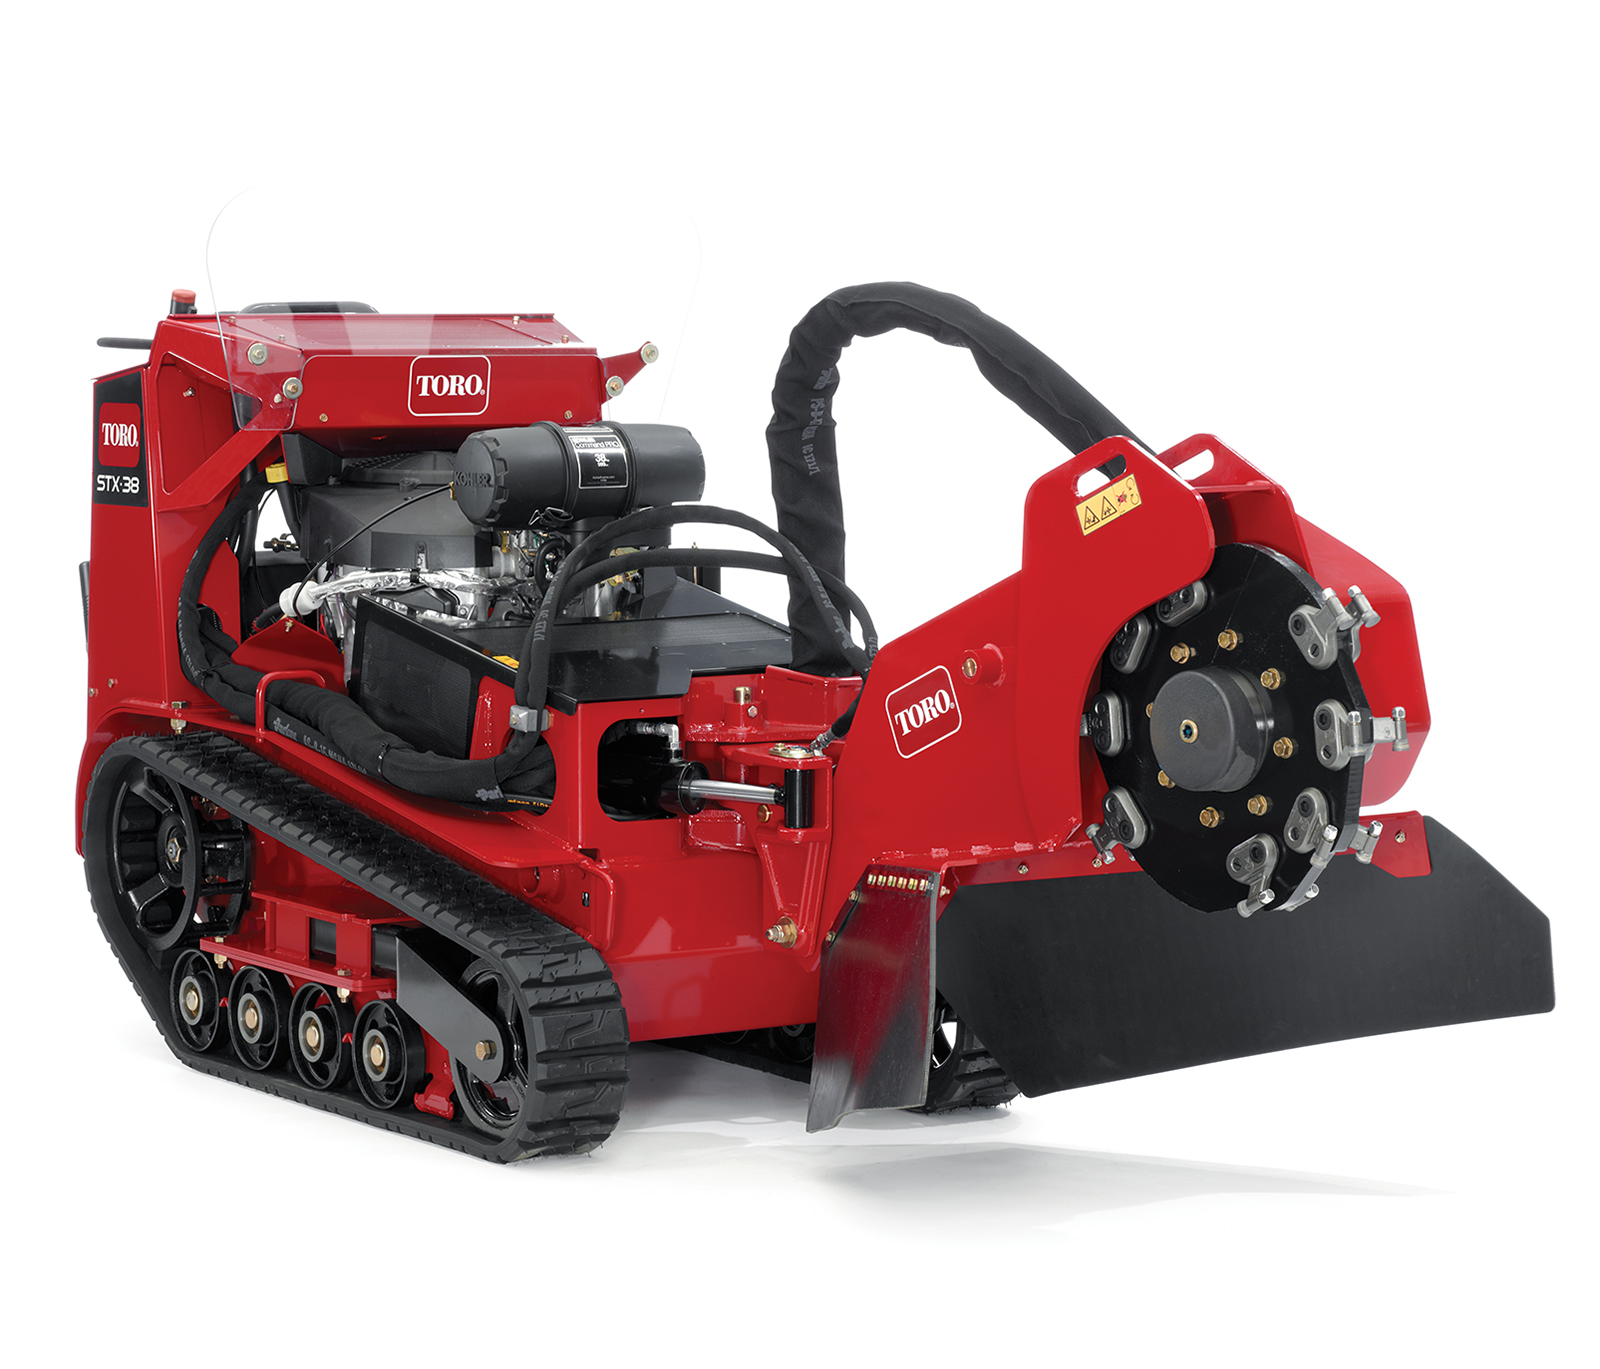 Rental Equipment, Dingo Rental | Toro